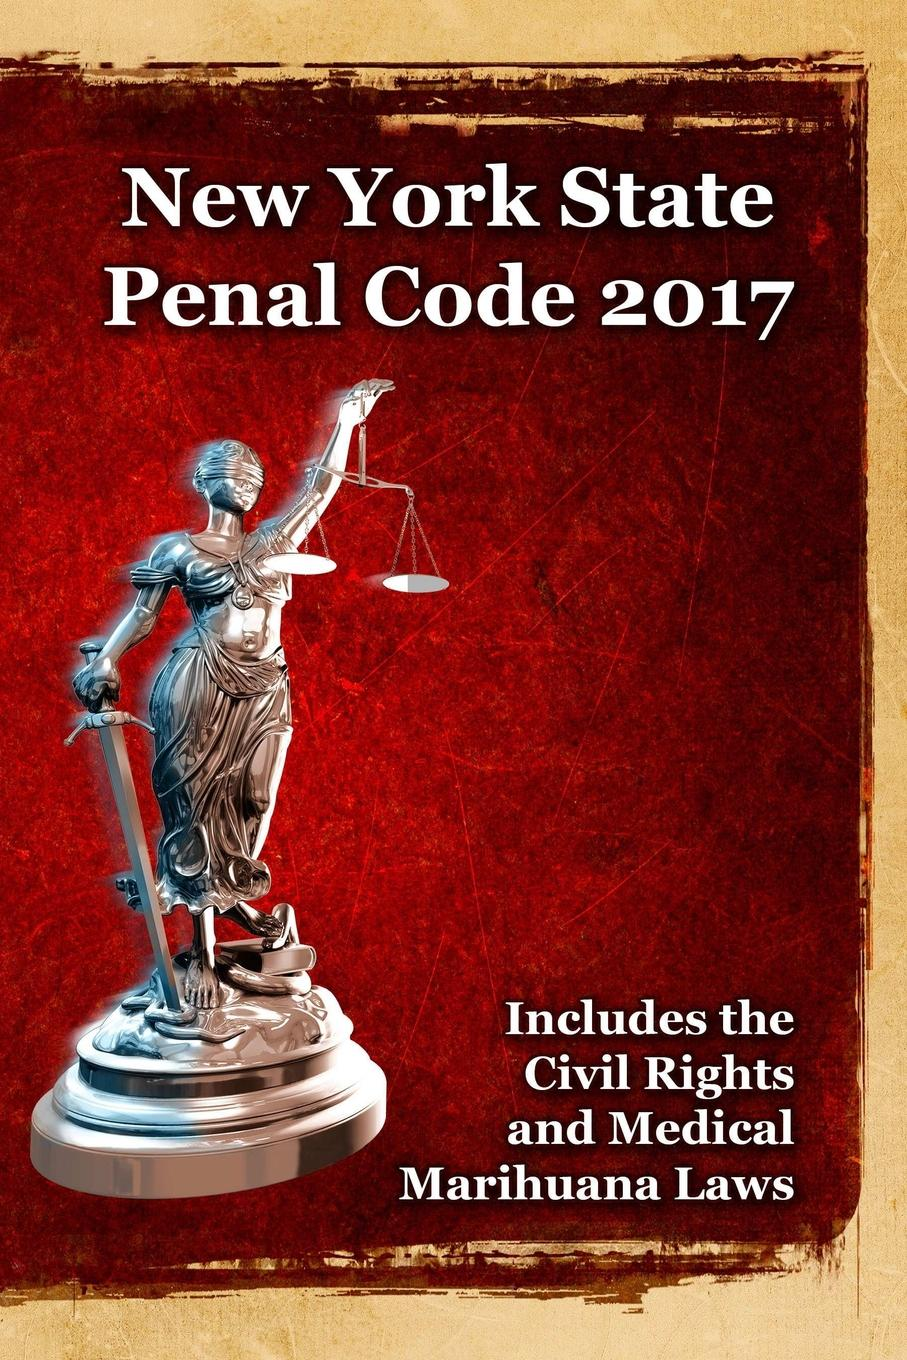 John Snape New York State Penal Code 2017 edited by alison dunn the voluntary sector the state and the law